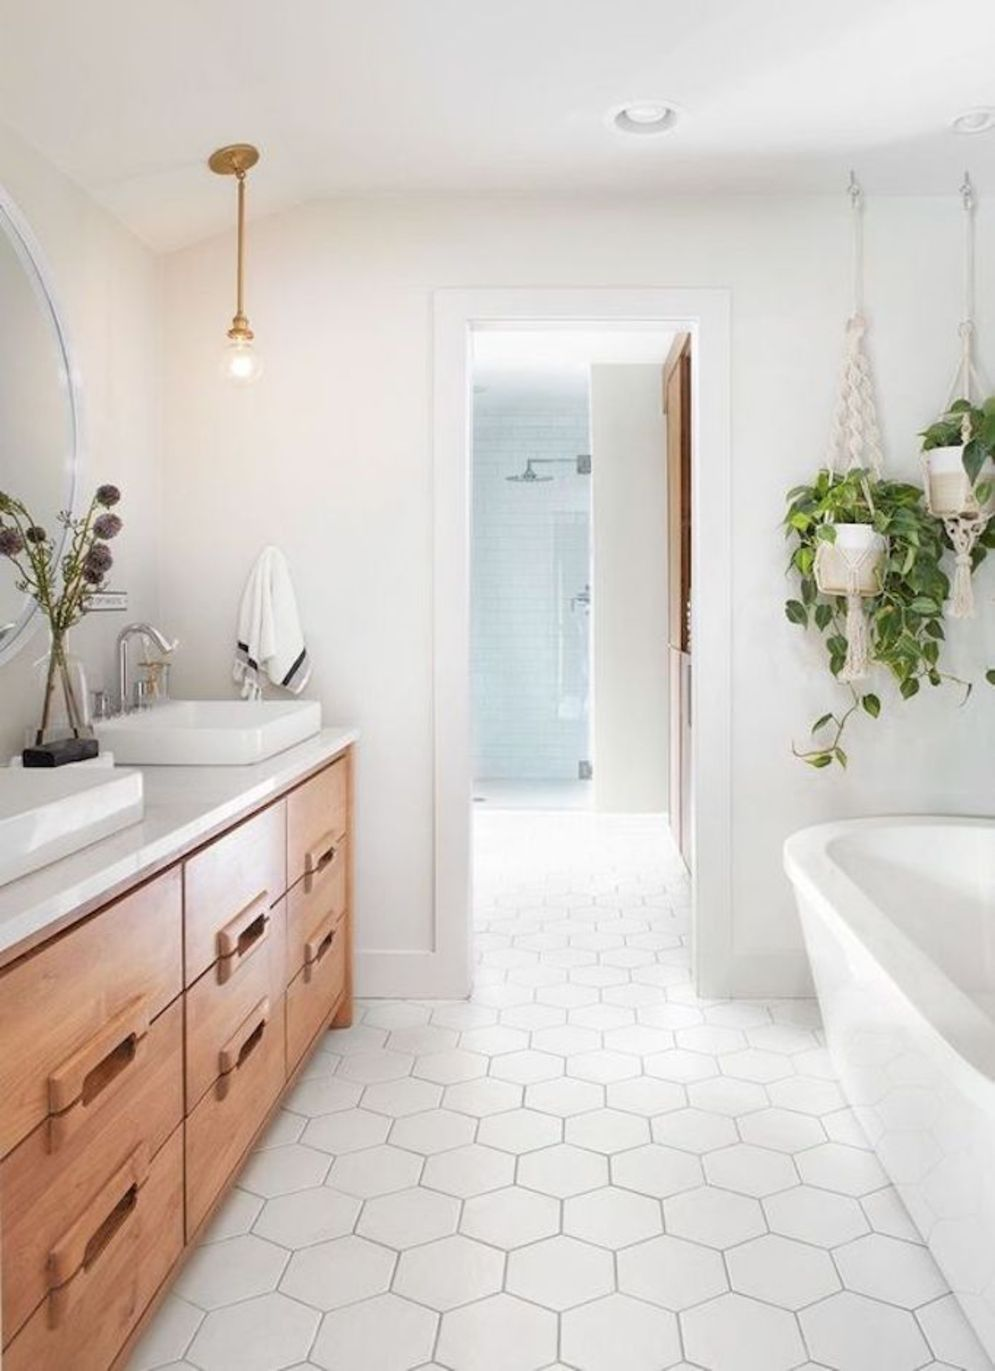 Most savvy bathroom designs with elegant wood finish to give more natural feel Image 15